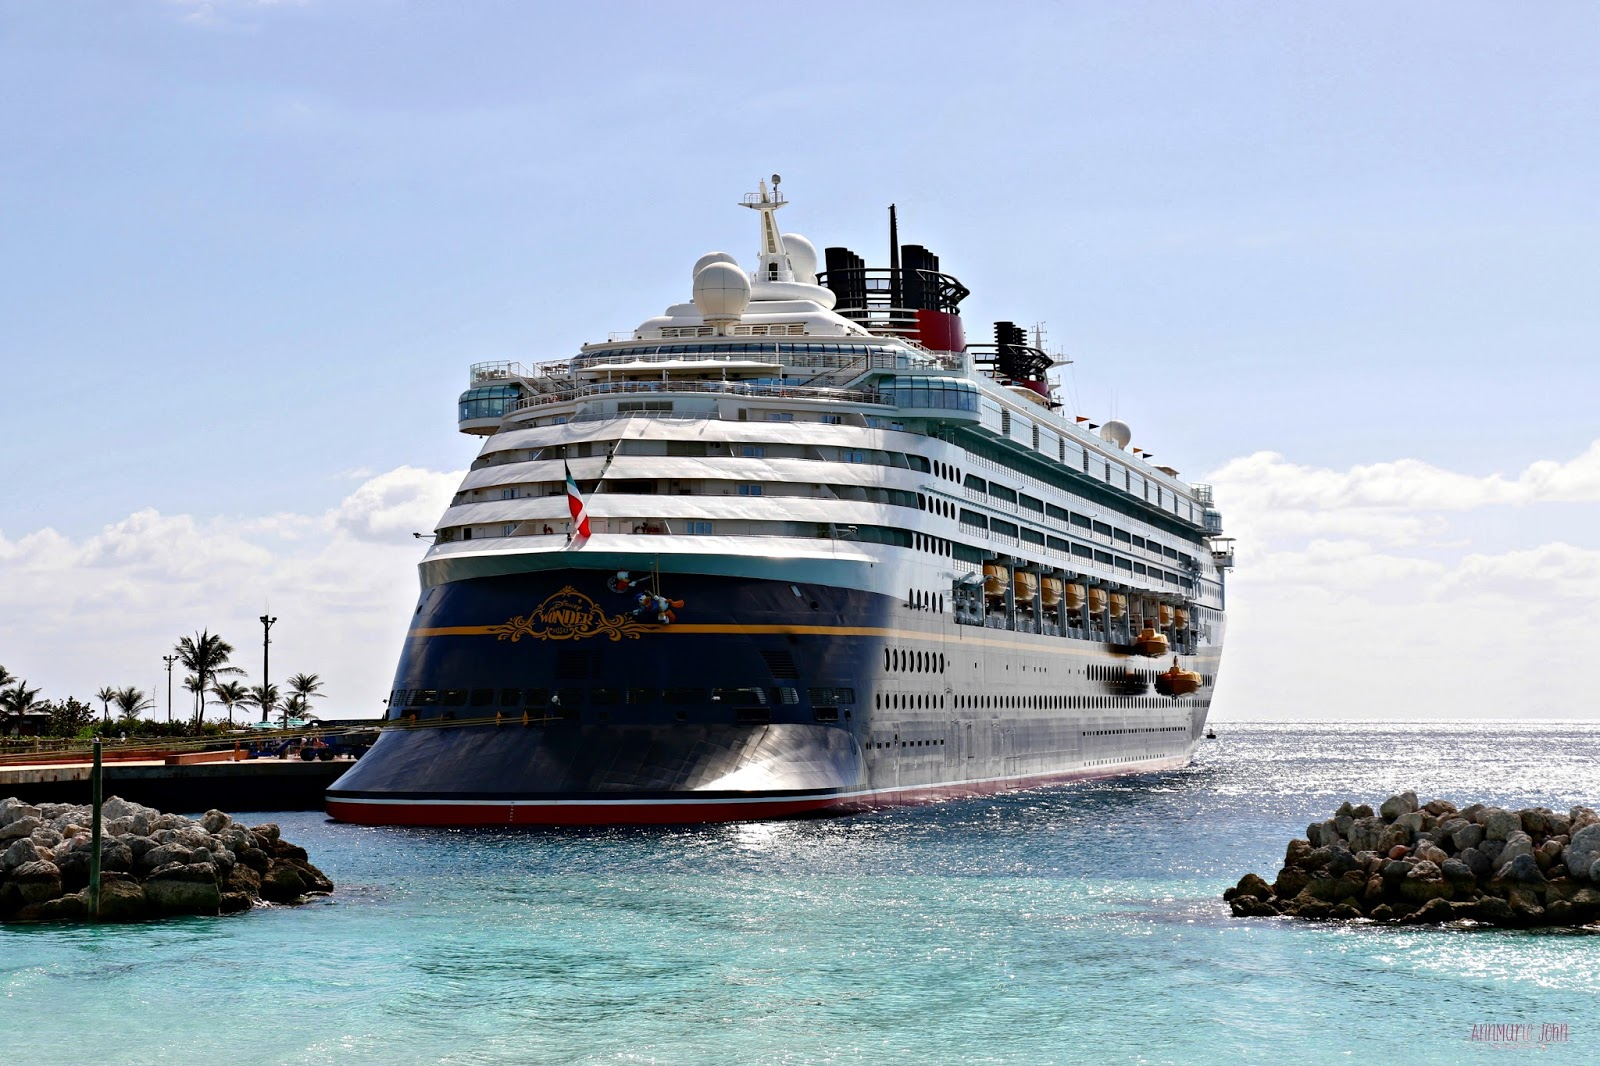 Reasons To Book A Disney Cruise Today AnnMarie John - 3 5 day cruises